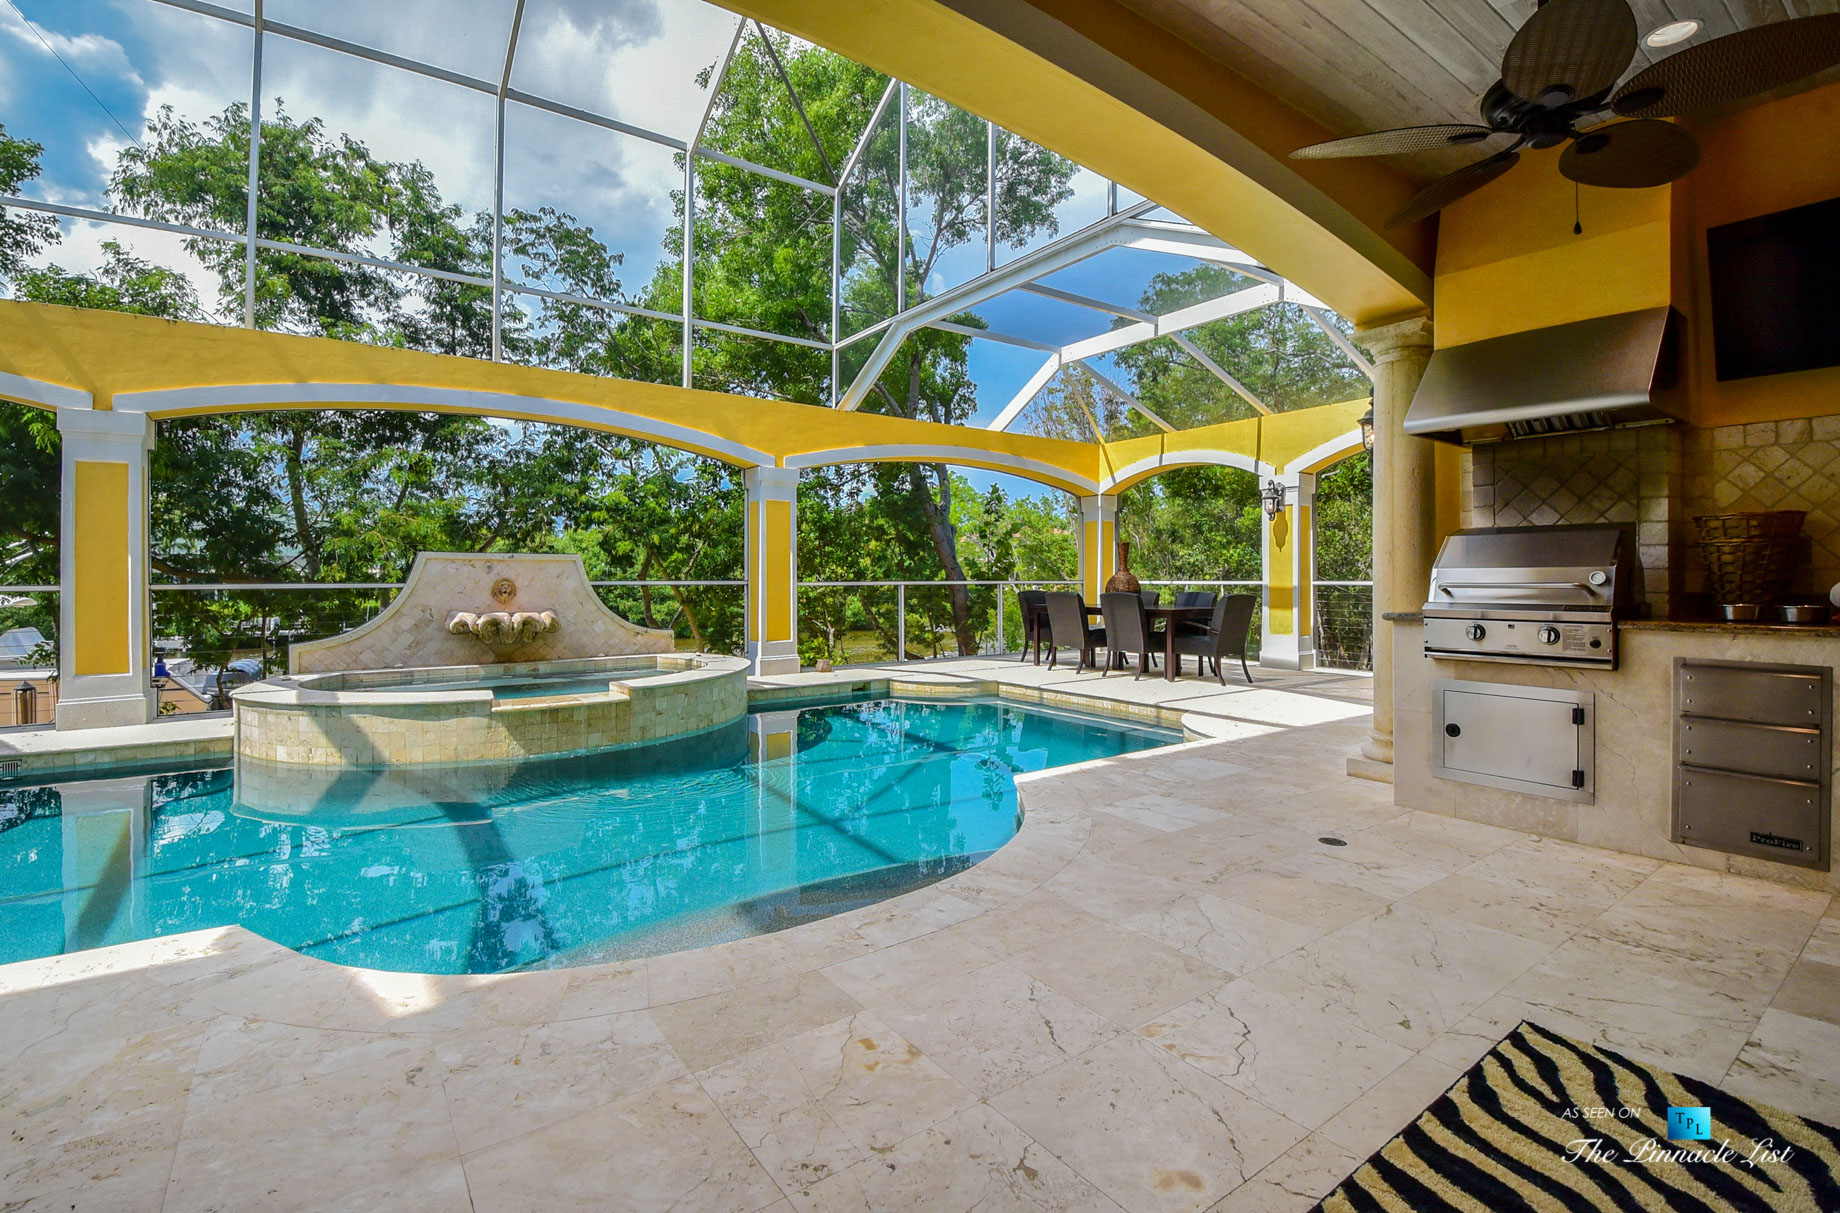 15 South Bridge Lane, Key Largo, FL, USA